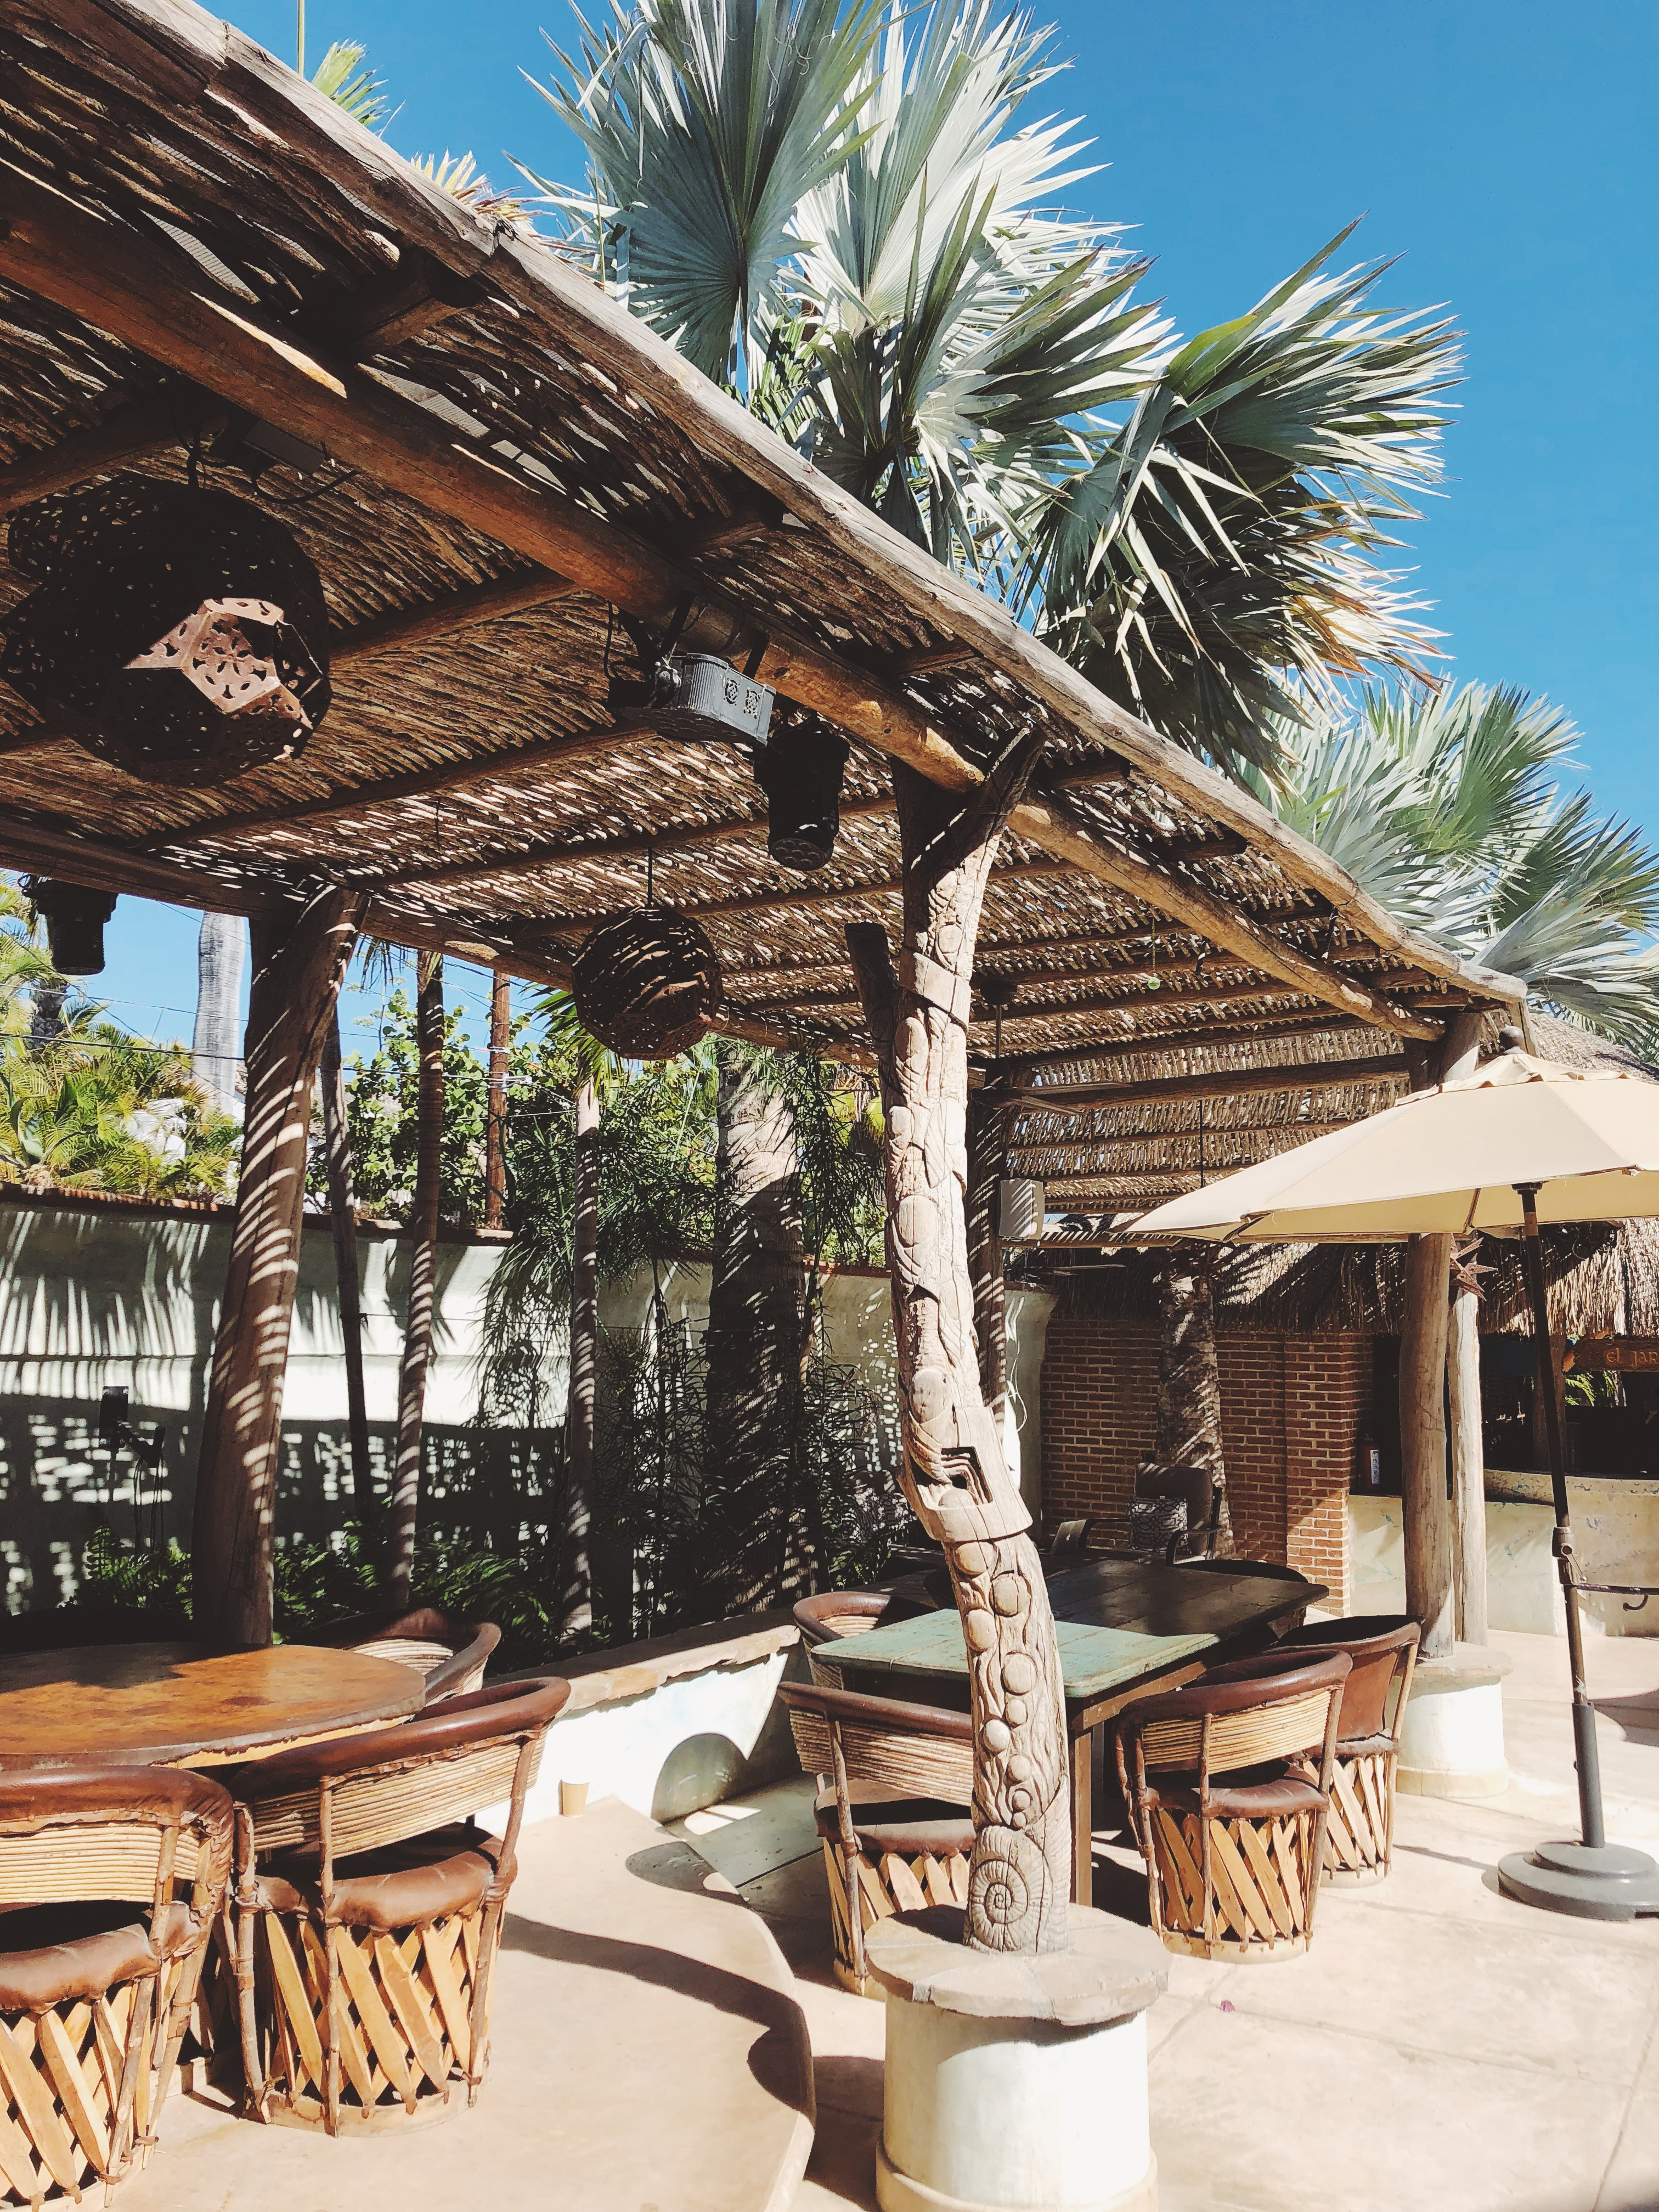 Best Places to Stay in Todos Santos - Emily Katz Travels Todo Santos Mexico - La Esquina